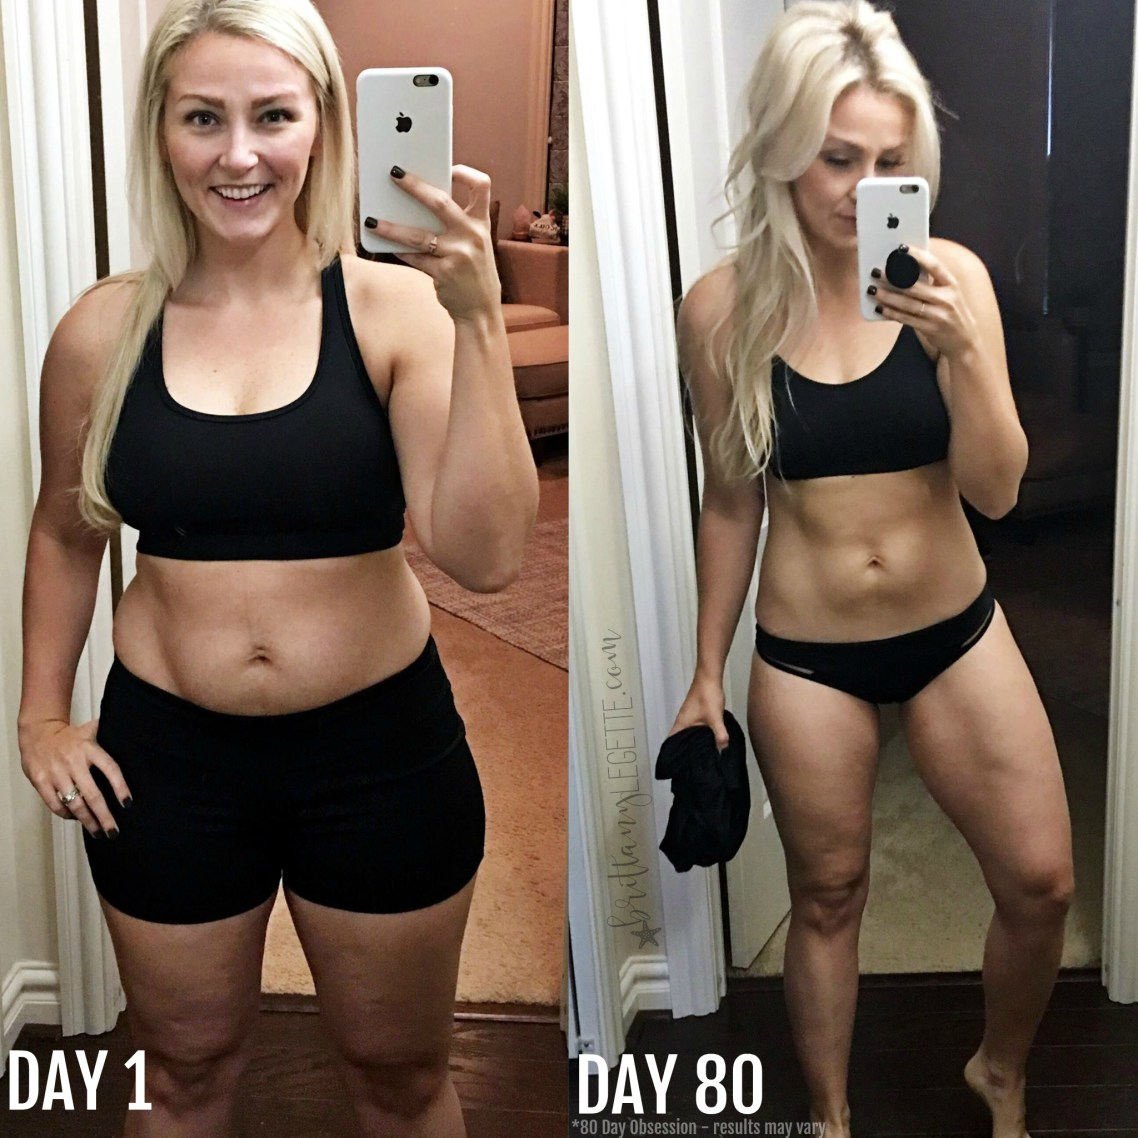 80 Day Obsession, final results, official test group, Brittany LeGette, new mom, IVF, infertility, post partum, postpartum, new mom, breastfeeding, meal plan, milk supply